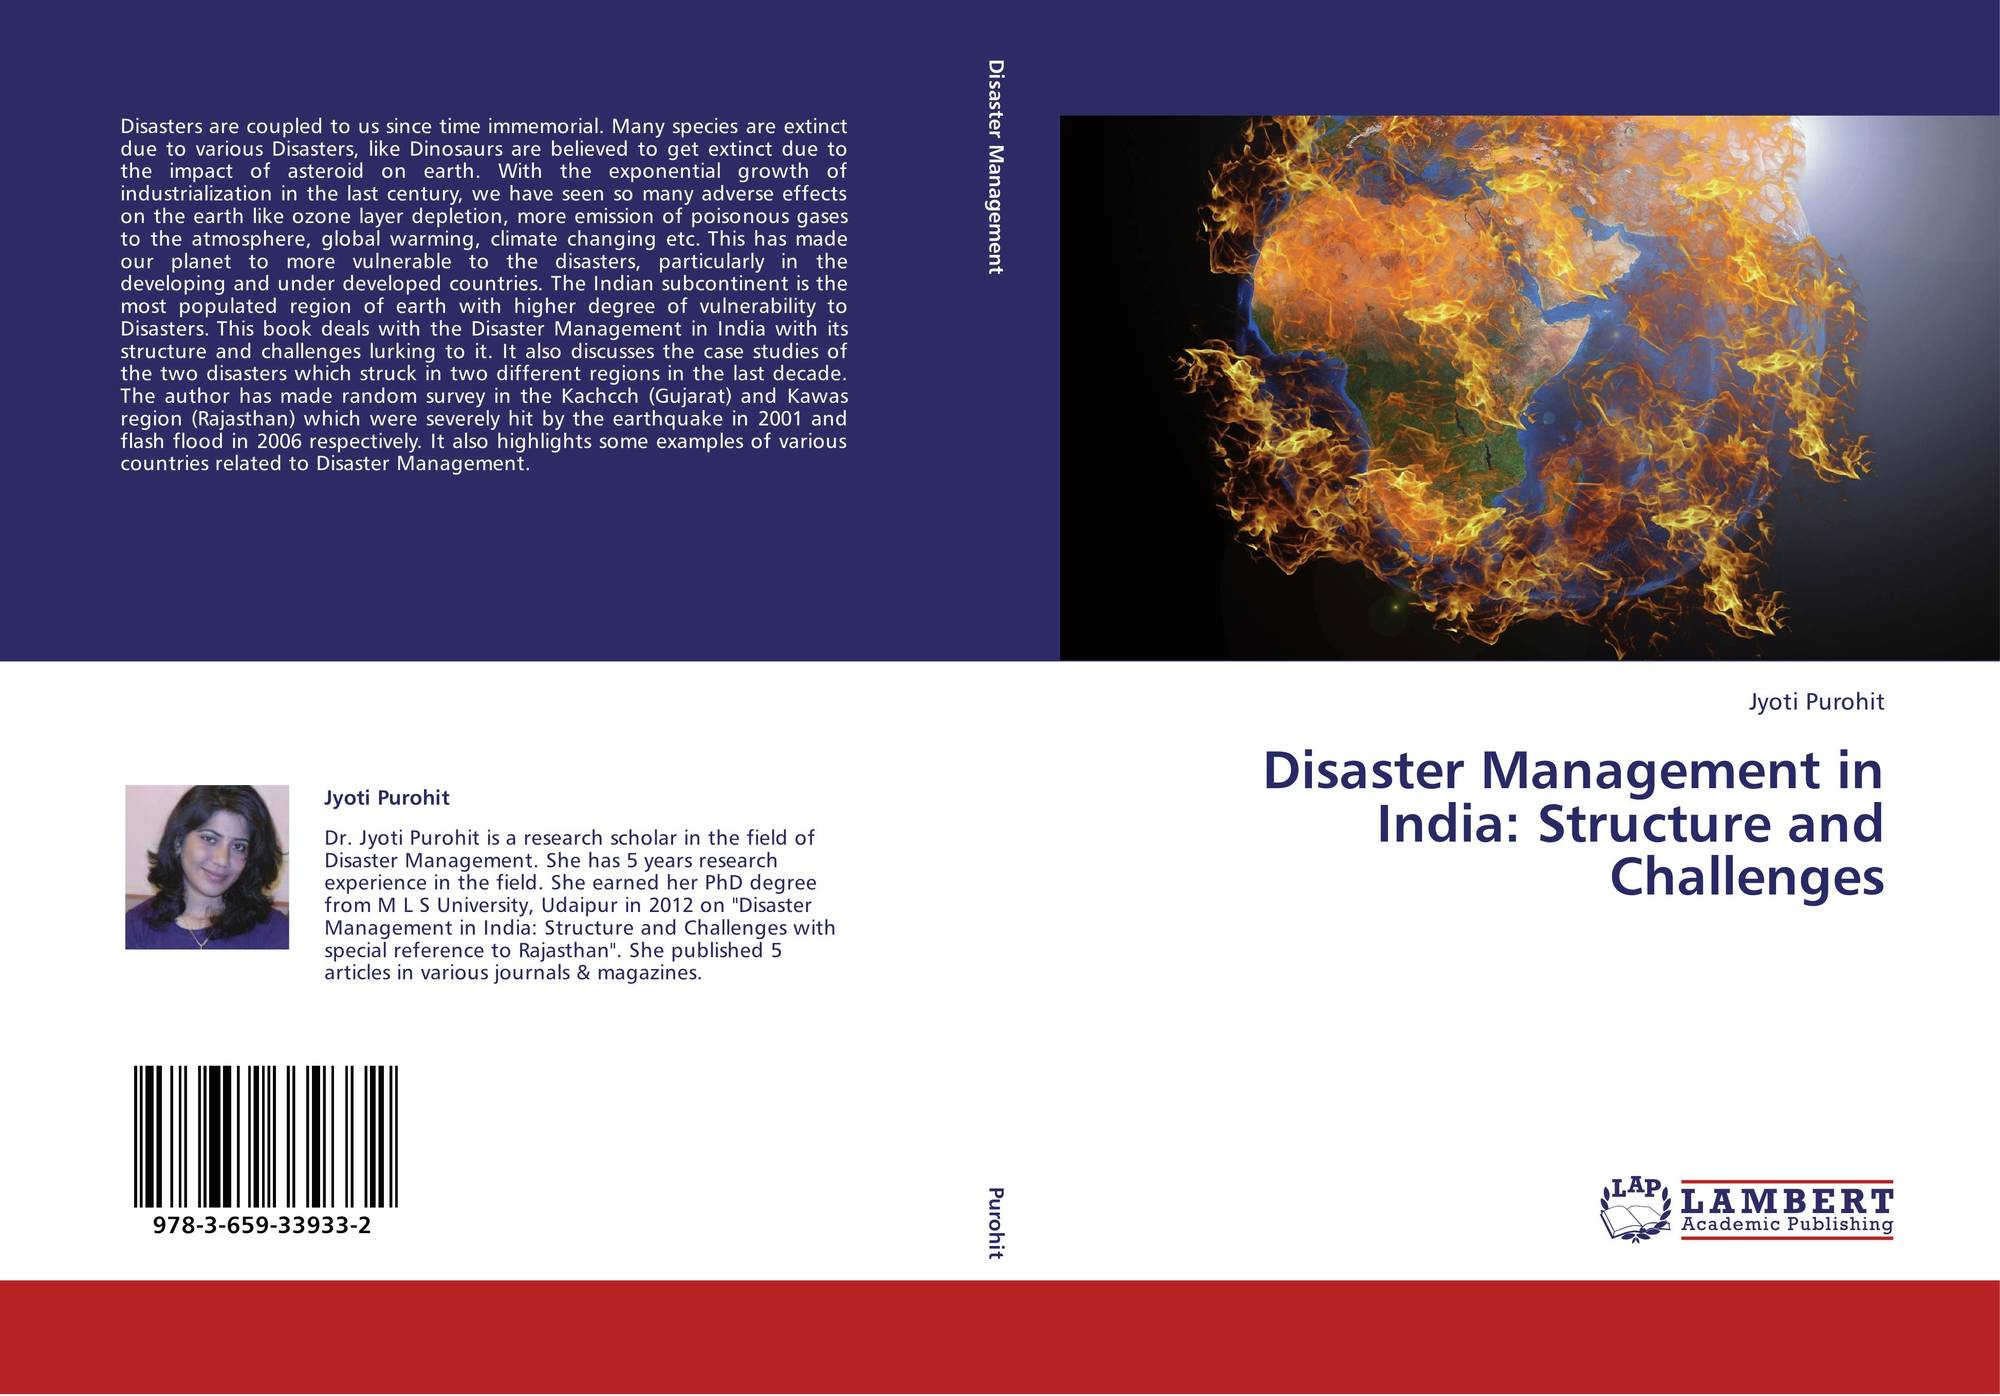 research papers on disaster management in india